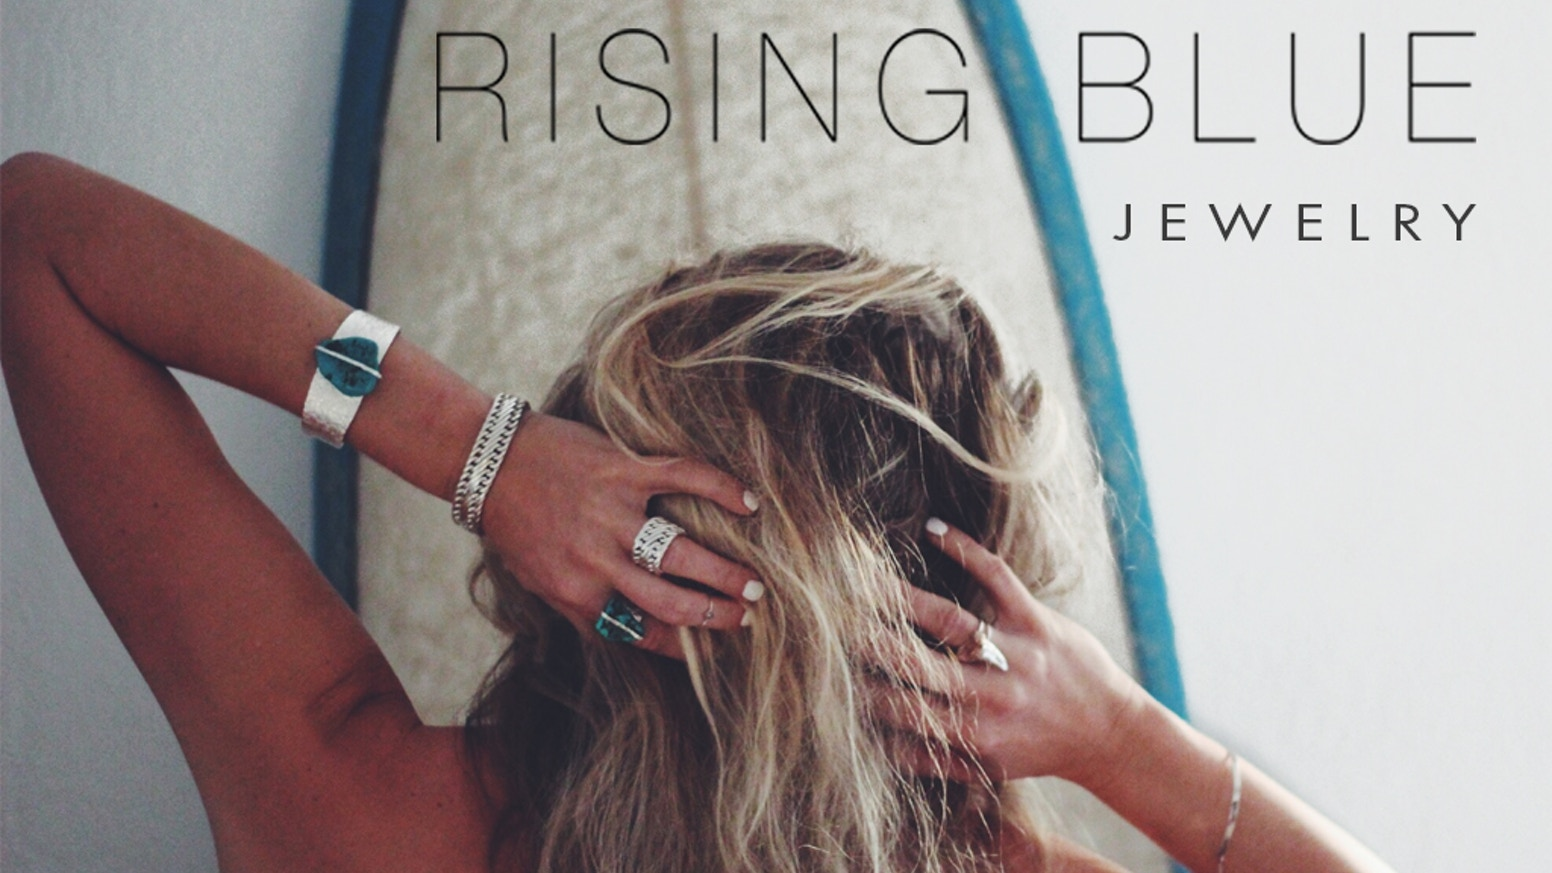 Rising Blue is handcrafted luxury jewelry collection, inspired by a trip around the world.